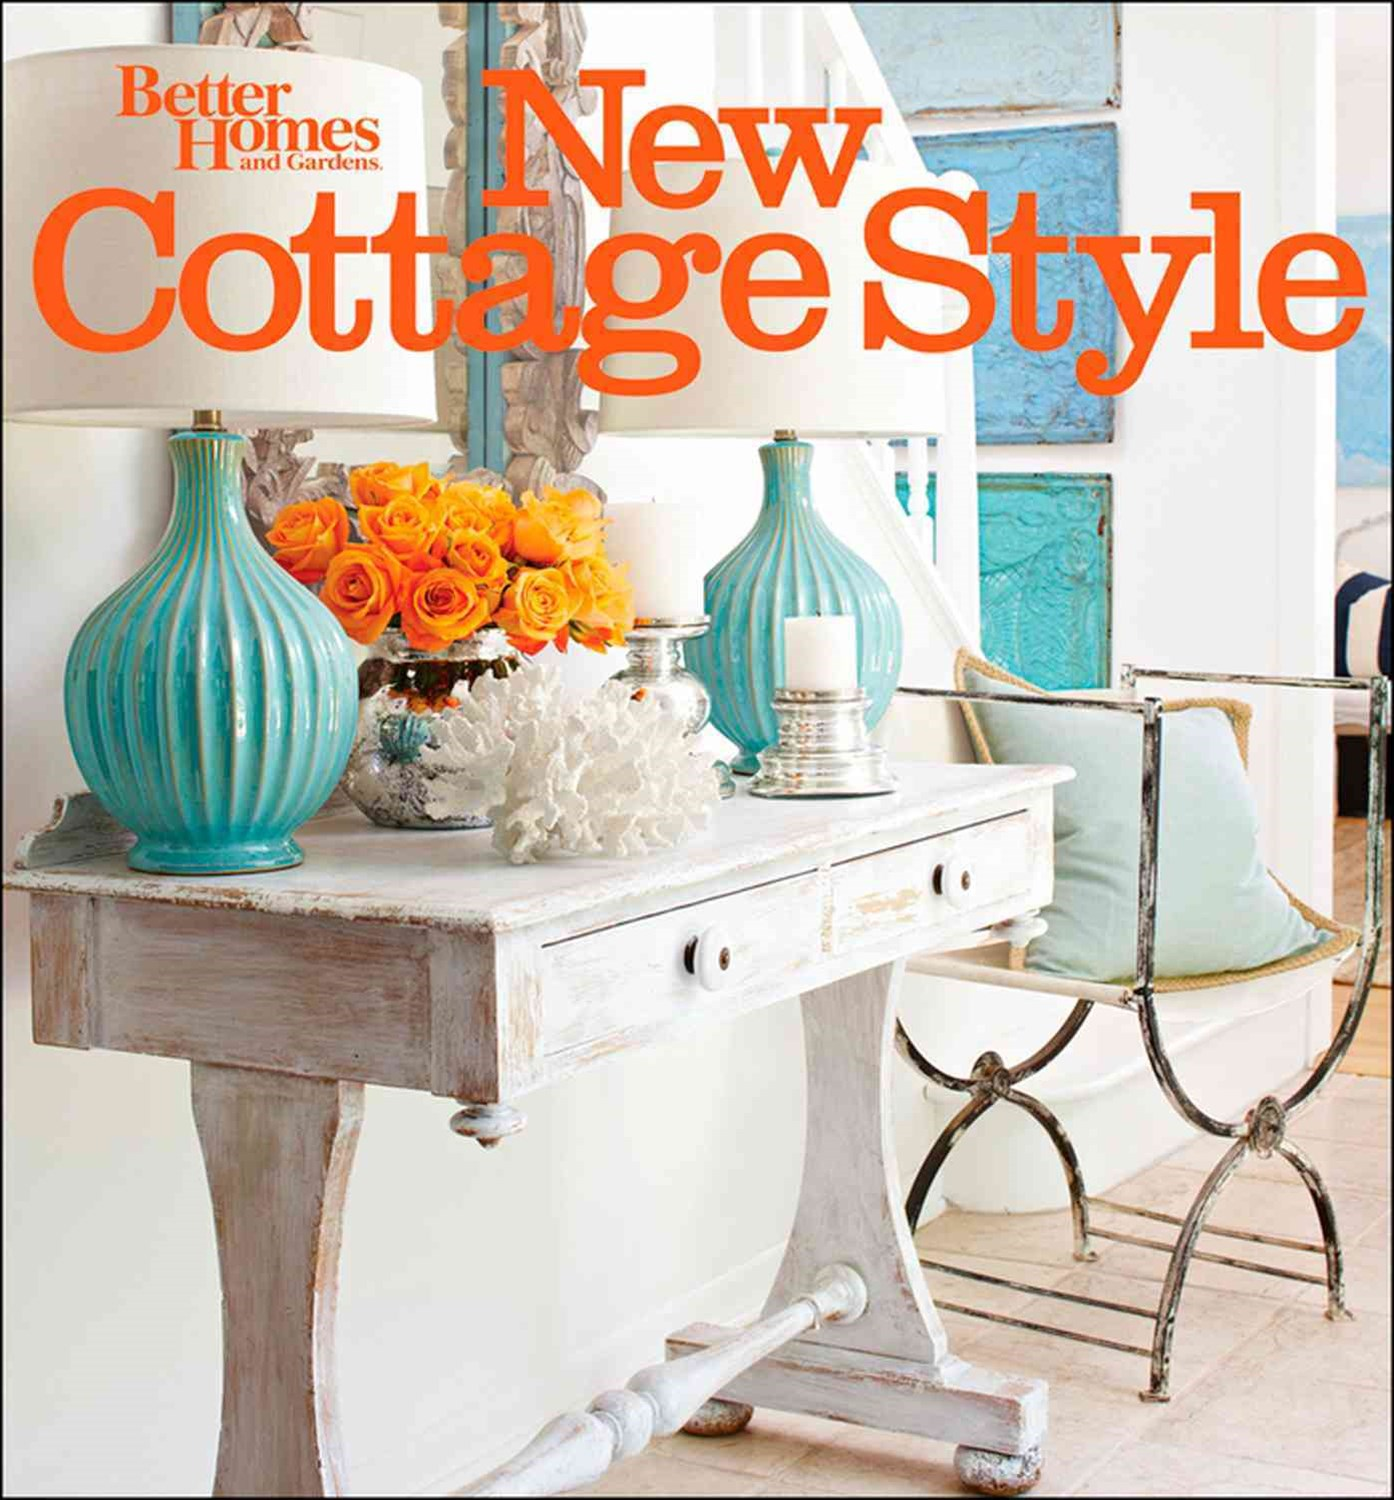 New Cottage Style, 2nd Edition